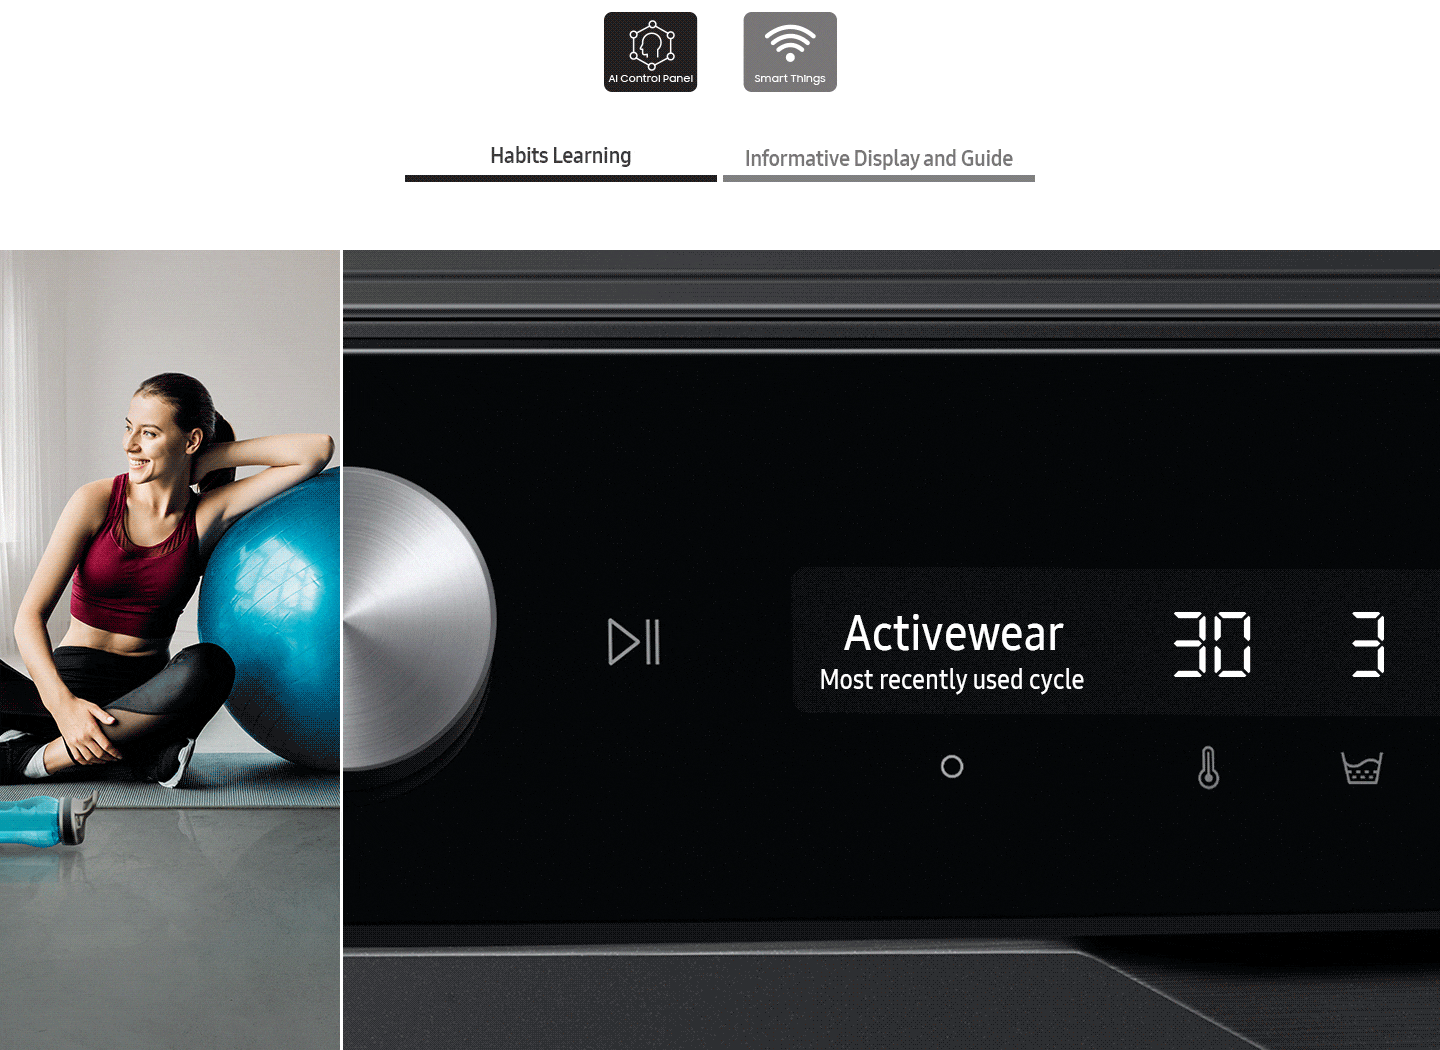 The AI washer's control panel displays the Habits learning, Informative display and guide.